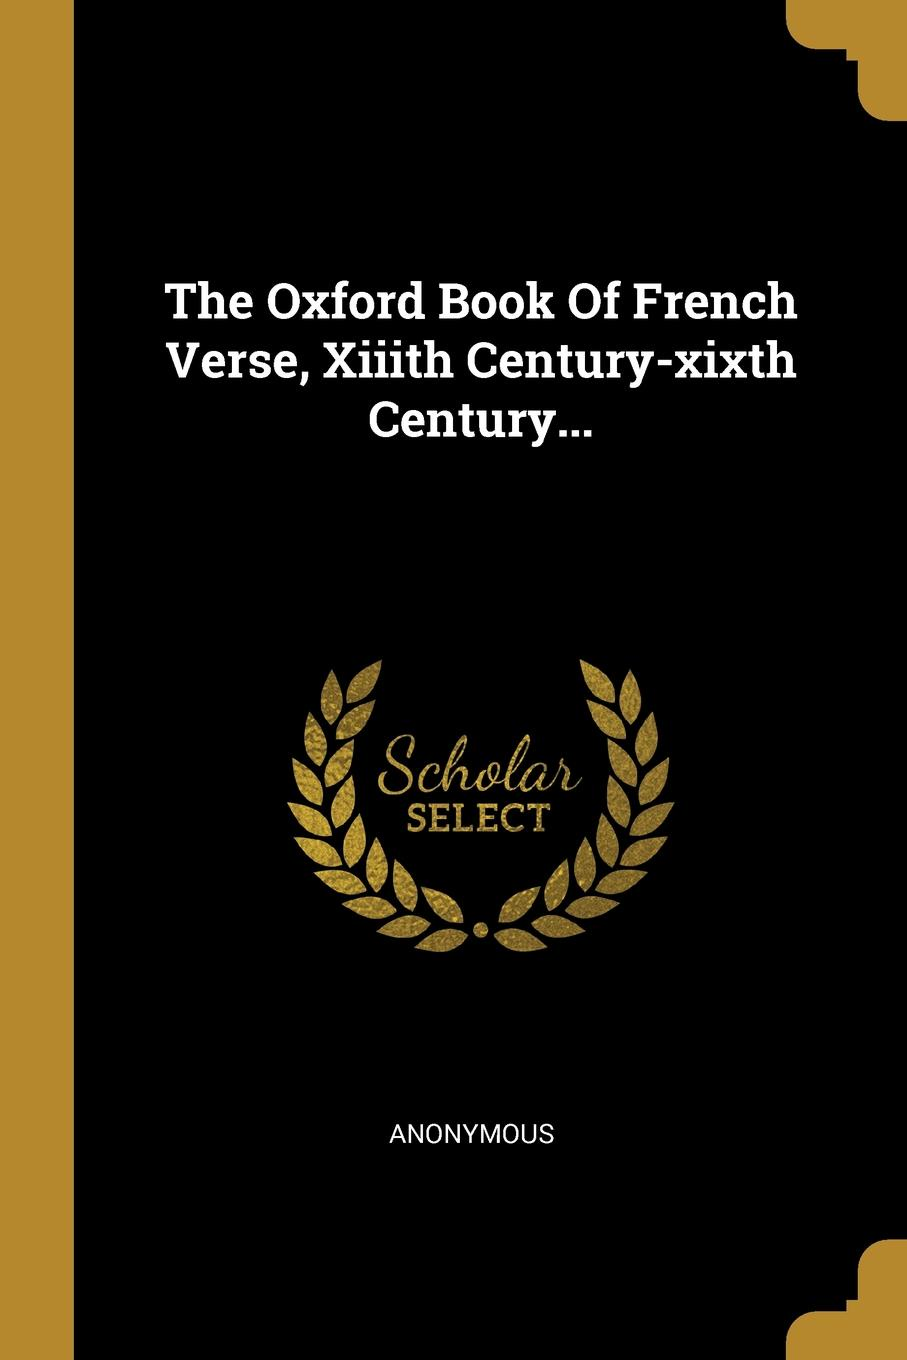 The Oxford Book Of French Verse, Xiiith Century-xixth Century...